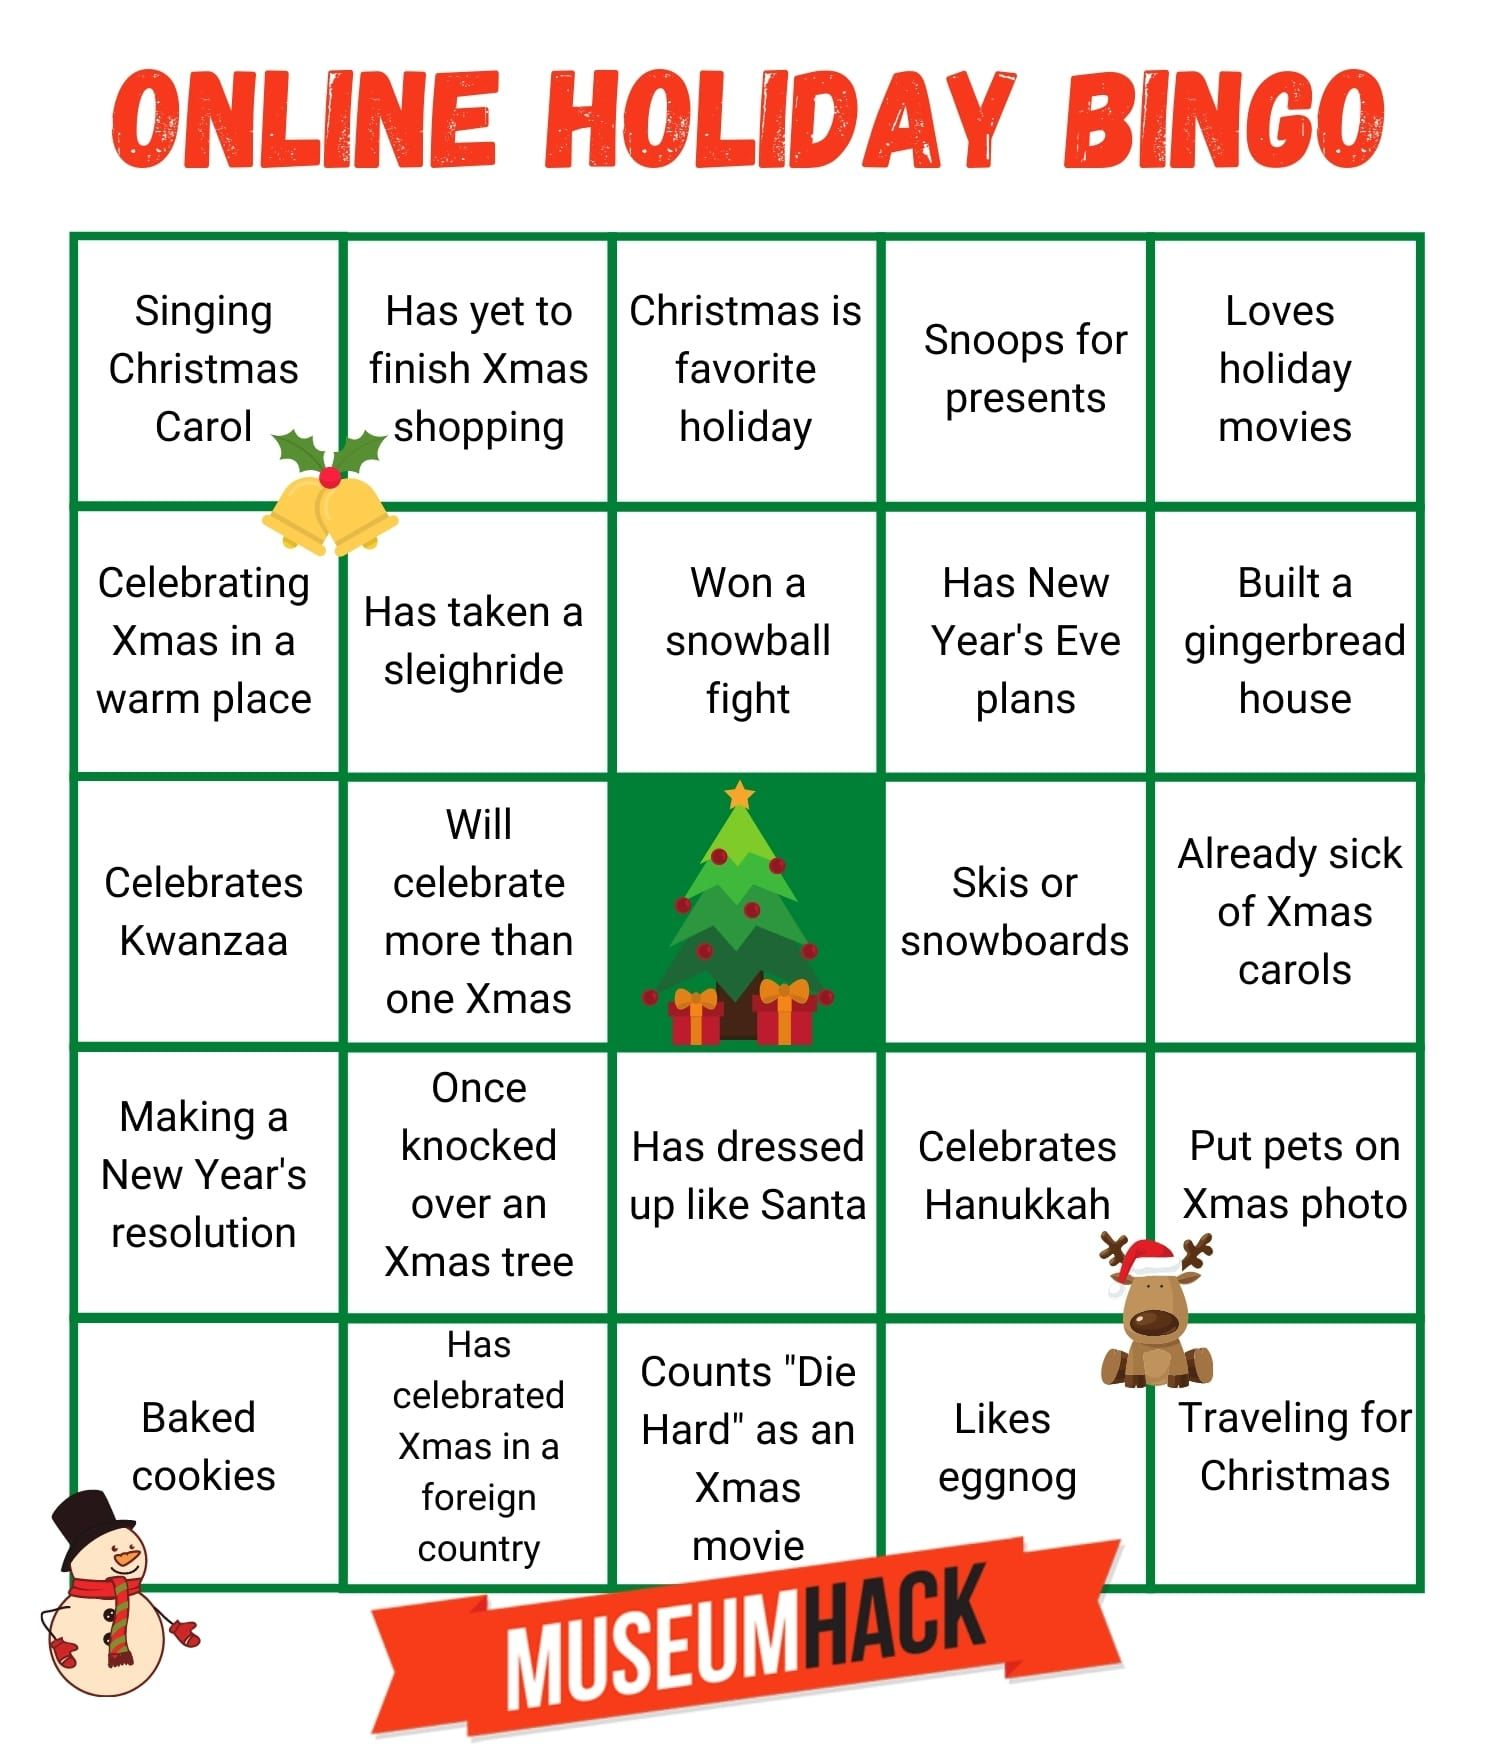 22 Virtual Christmas Party Ideas In 2020 Holidays In 2020 Holiday Party Activities Christmas Party Office Christmas Party